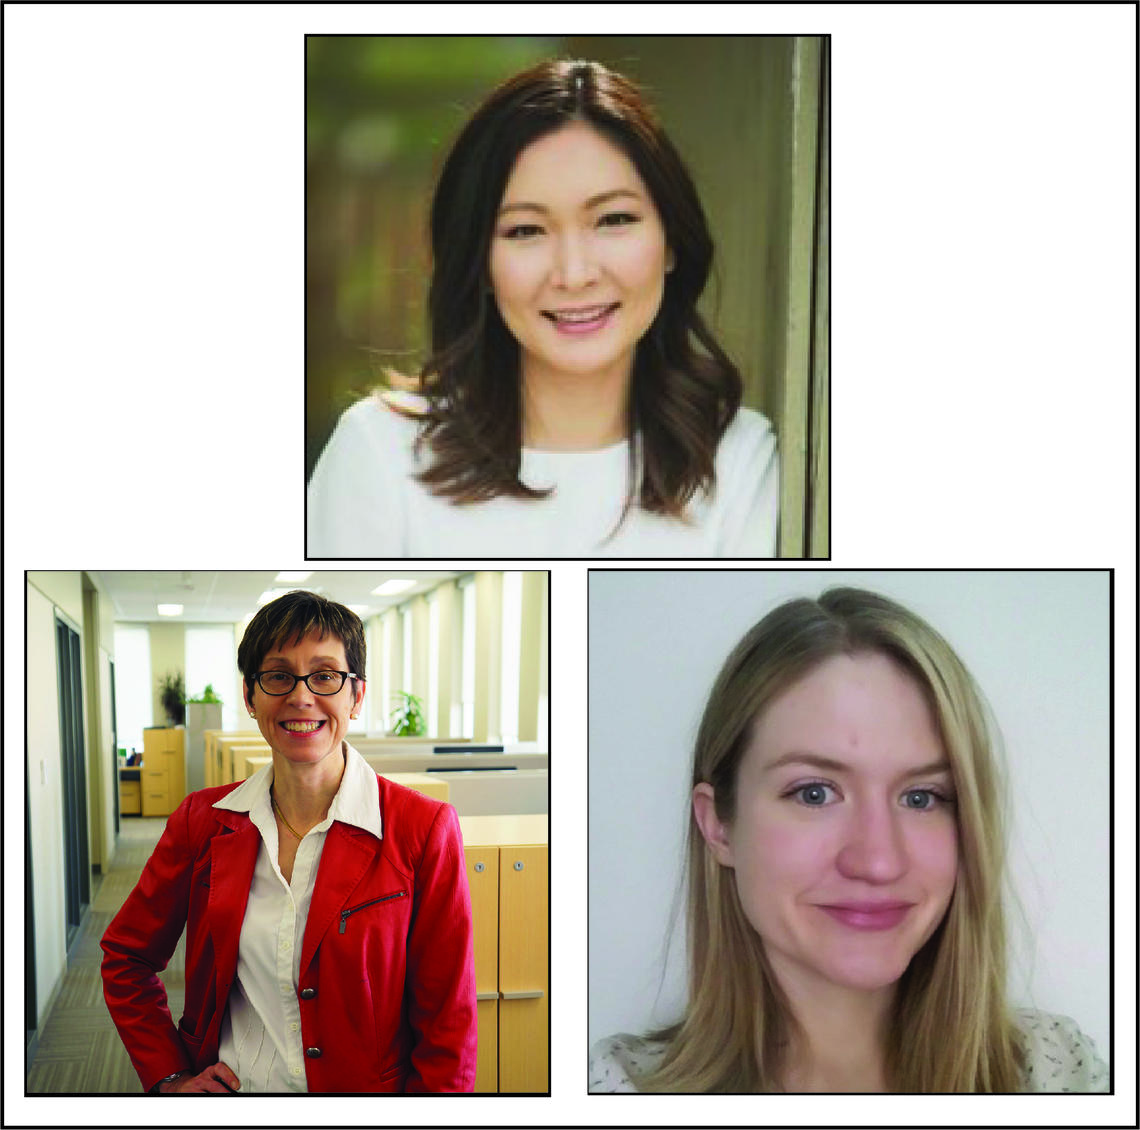 Keynote speakers for the 2019 Women in Data Science Cumming School of Medicine Conference are: Rena Tabata (top), Dr. Lisa Lix, PhD, (bottom left), Jacqueline Harris (bottom right).